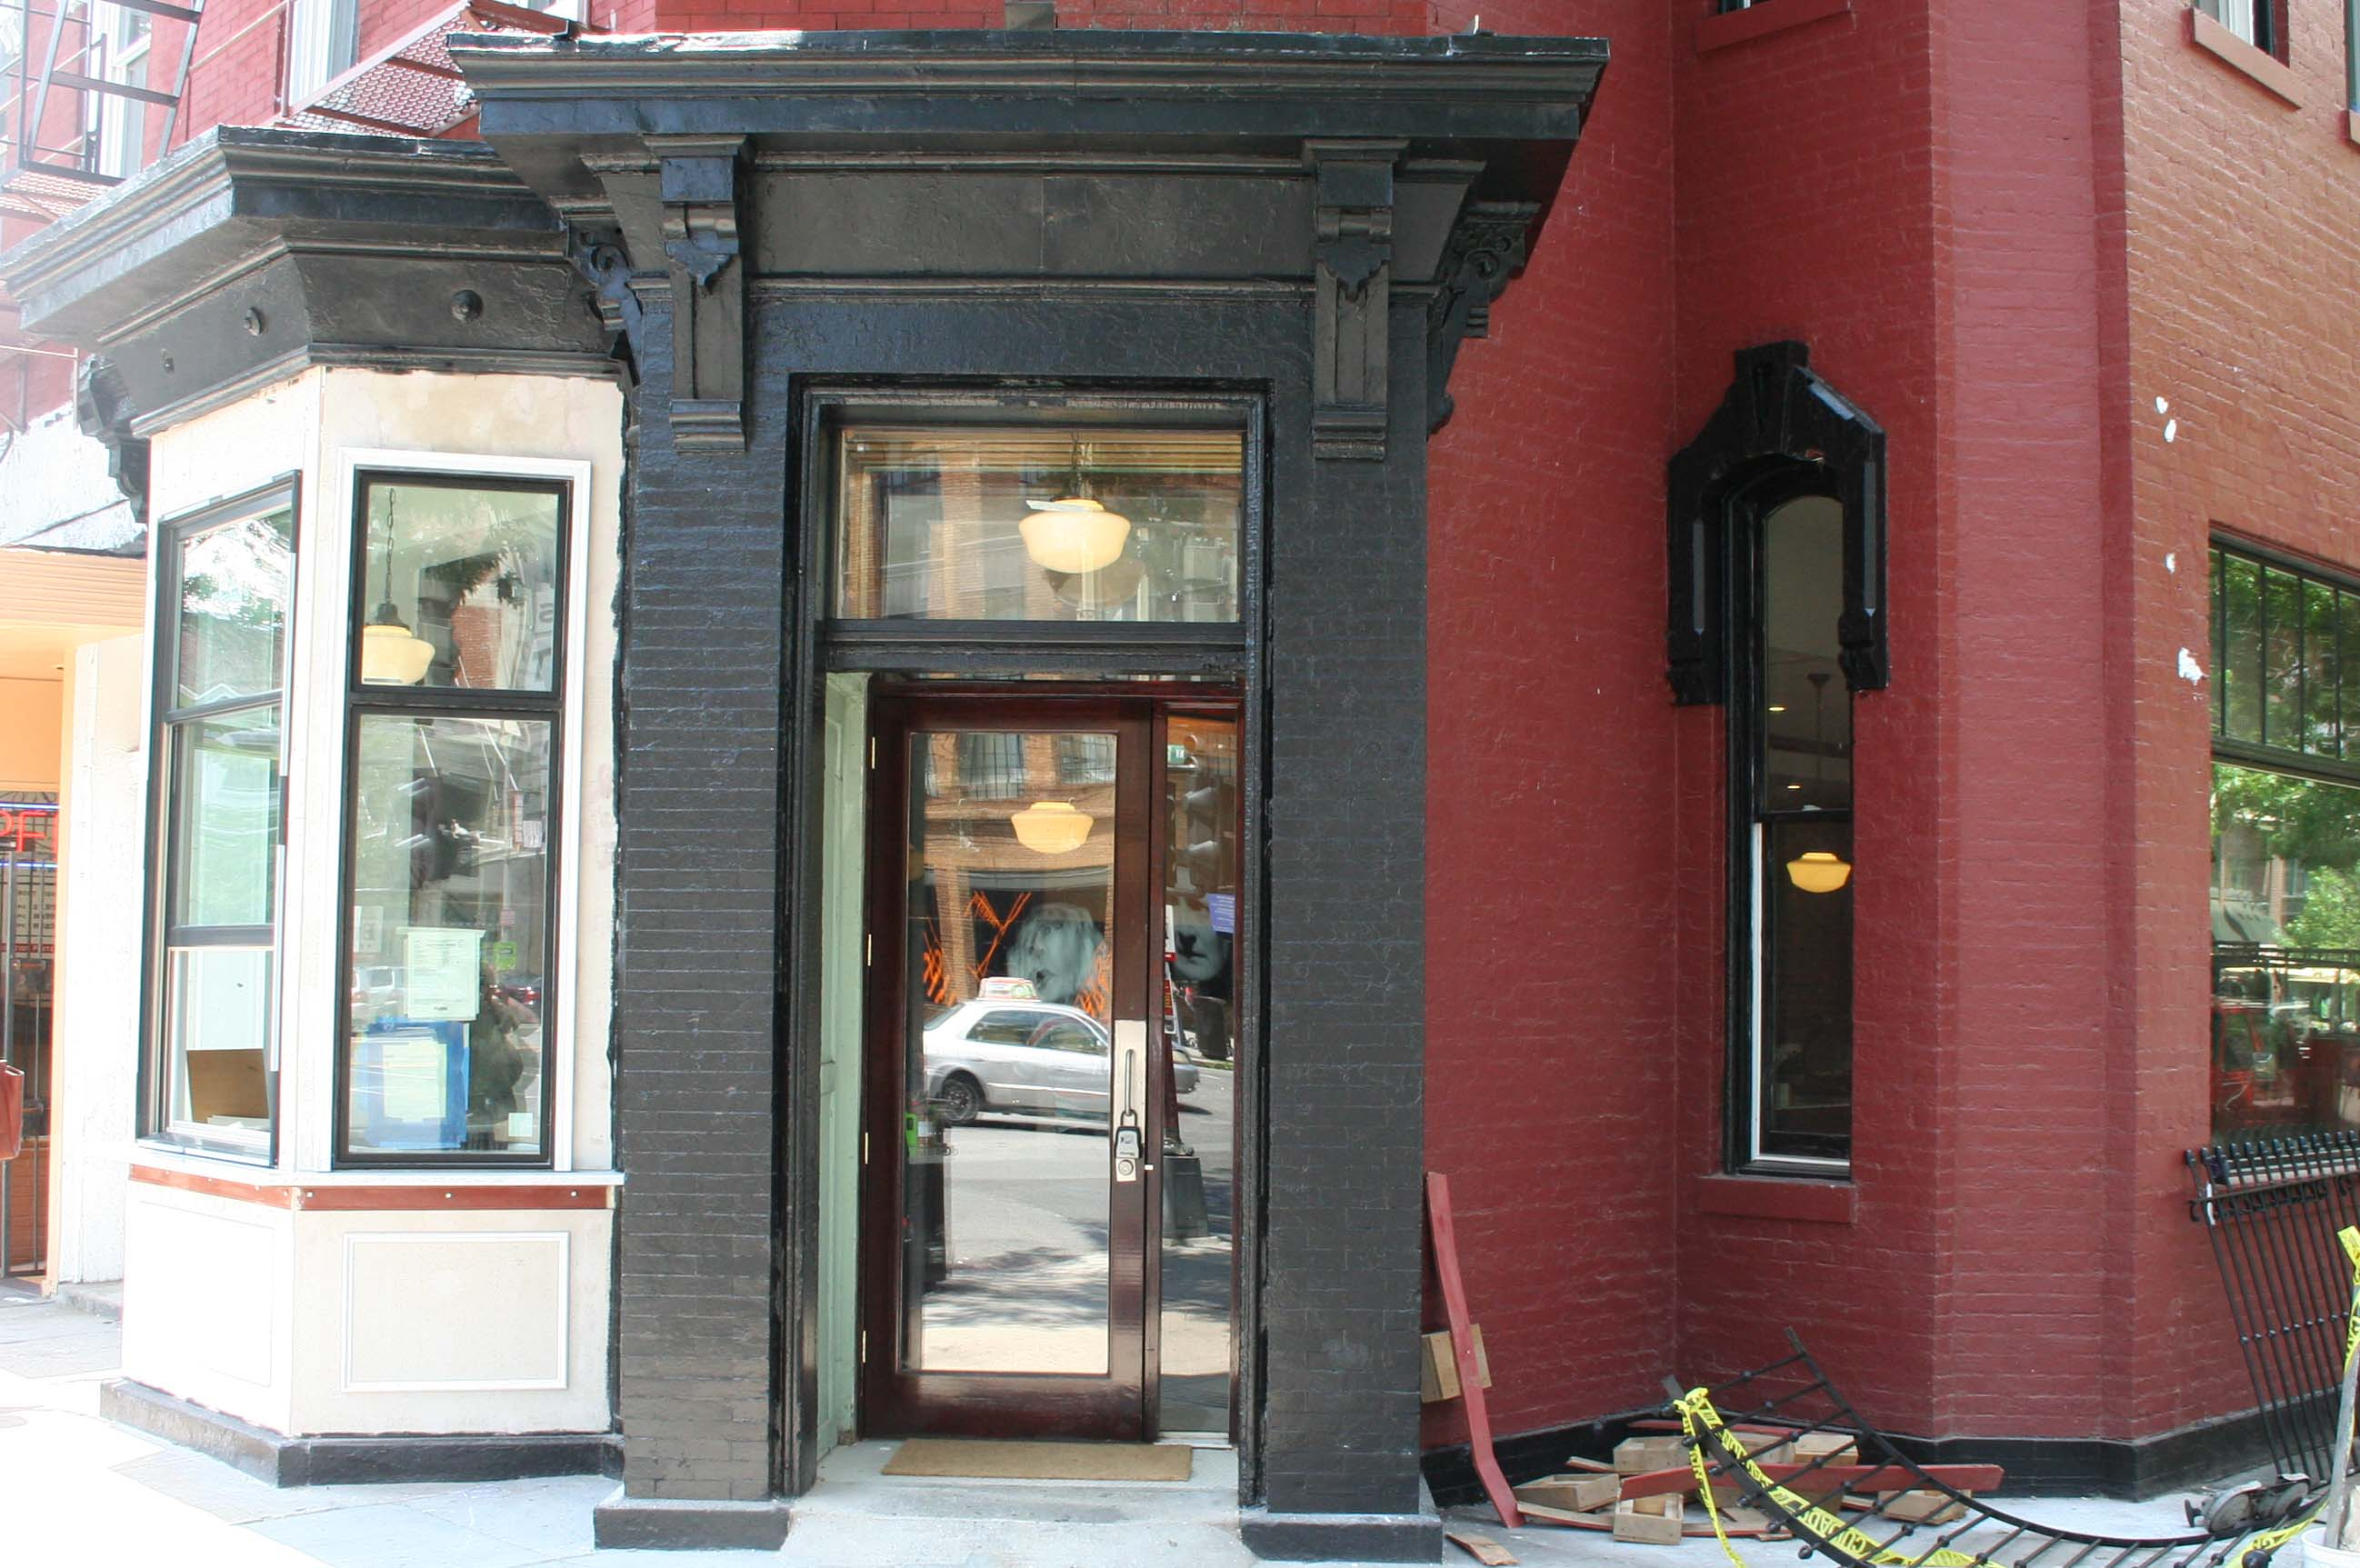 Dolcezza's newest location at 14th & P streets NW opened at 8 a.m. today. It features a